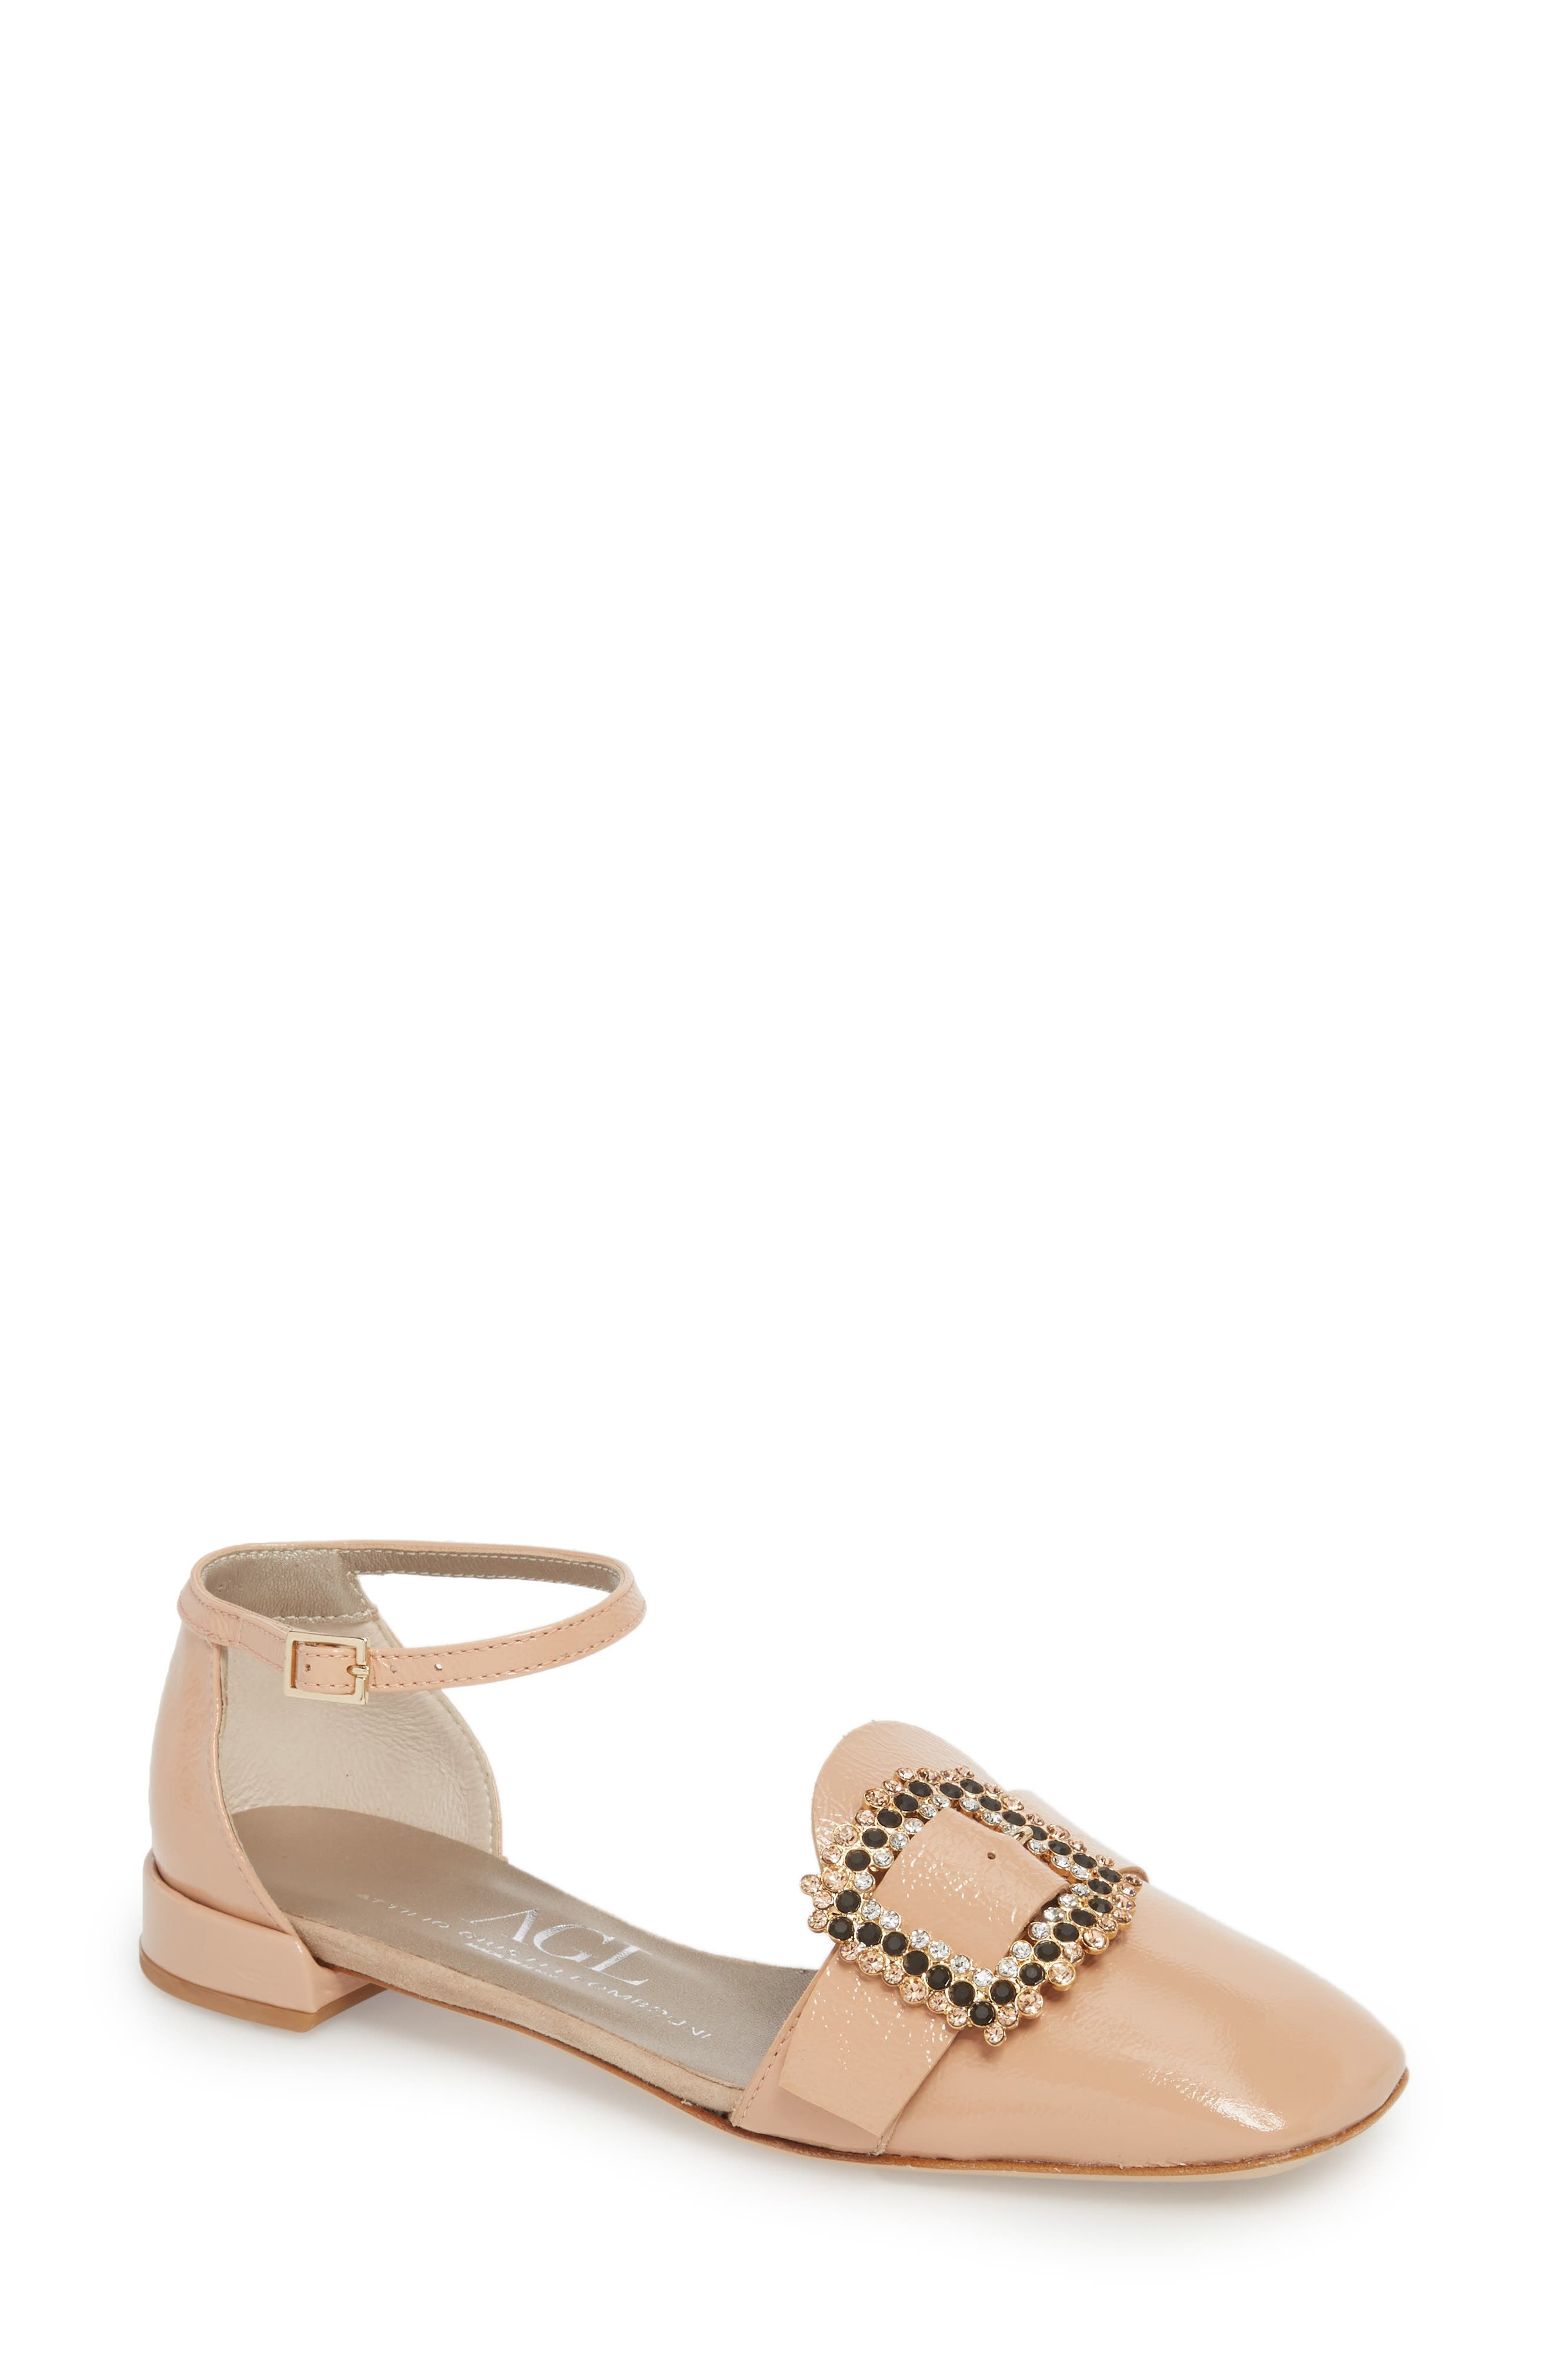 Agl Ornament Ankle Strap Flat, Beige